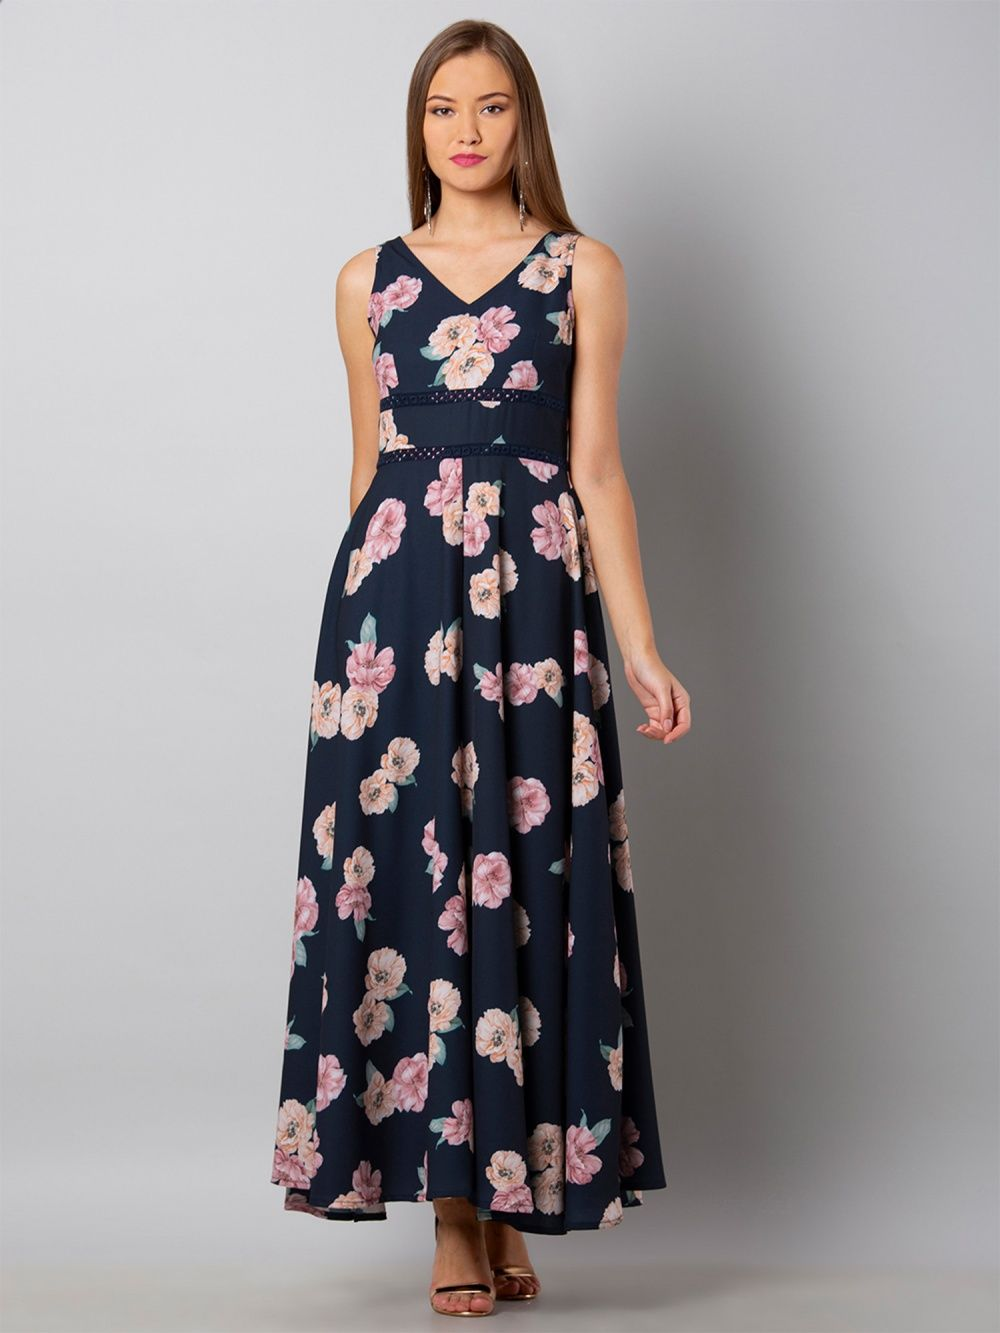 20605f9ffecd4d Faballey Dresses : Buy Faballey Navy Blue Floral Lace Insert Maxi ...